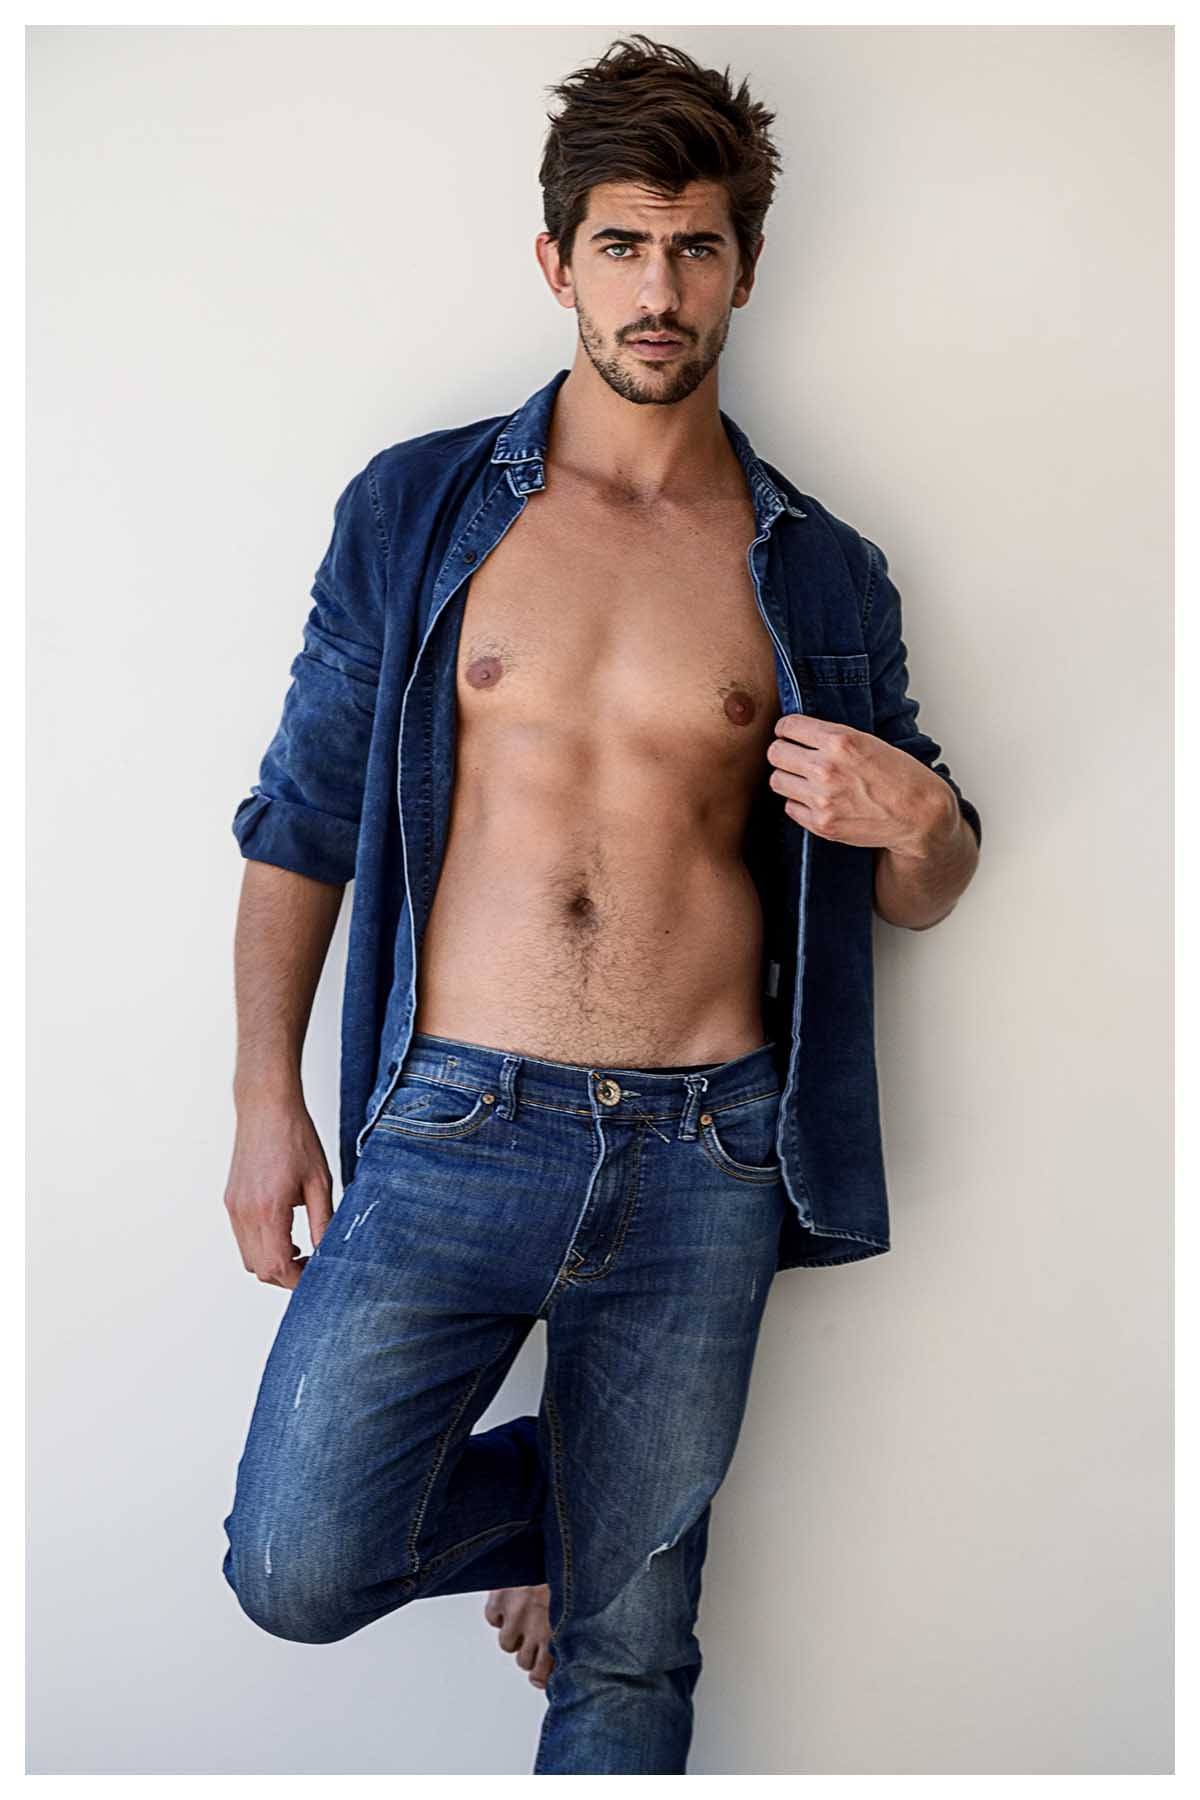 Luan Fernandes by Ramiro Flórez for Brazilian Male Model